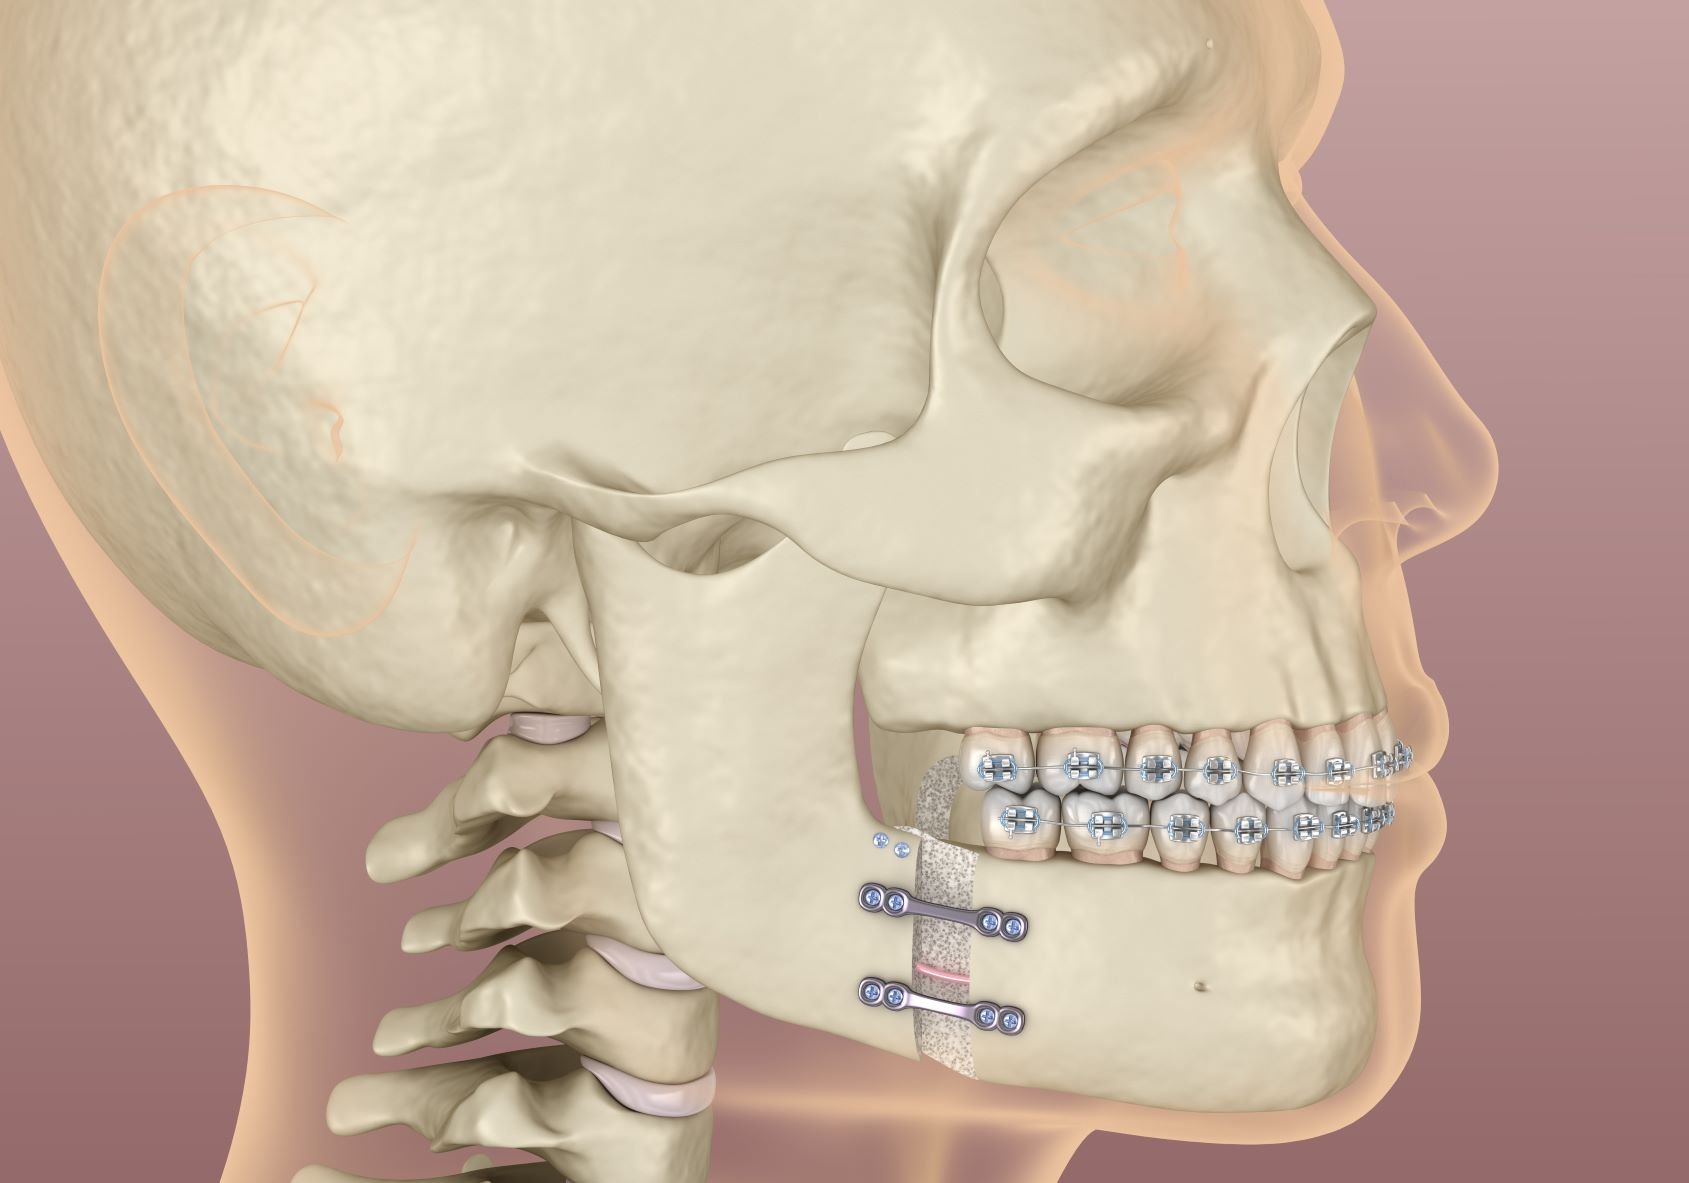 What are Jaw deformities?